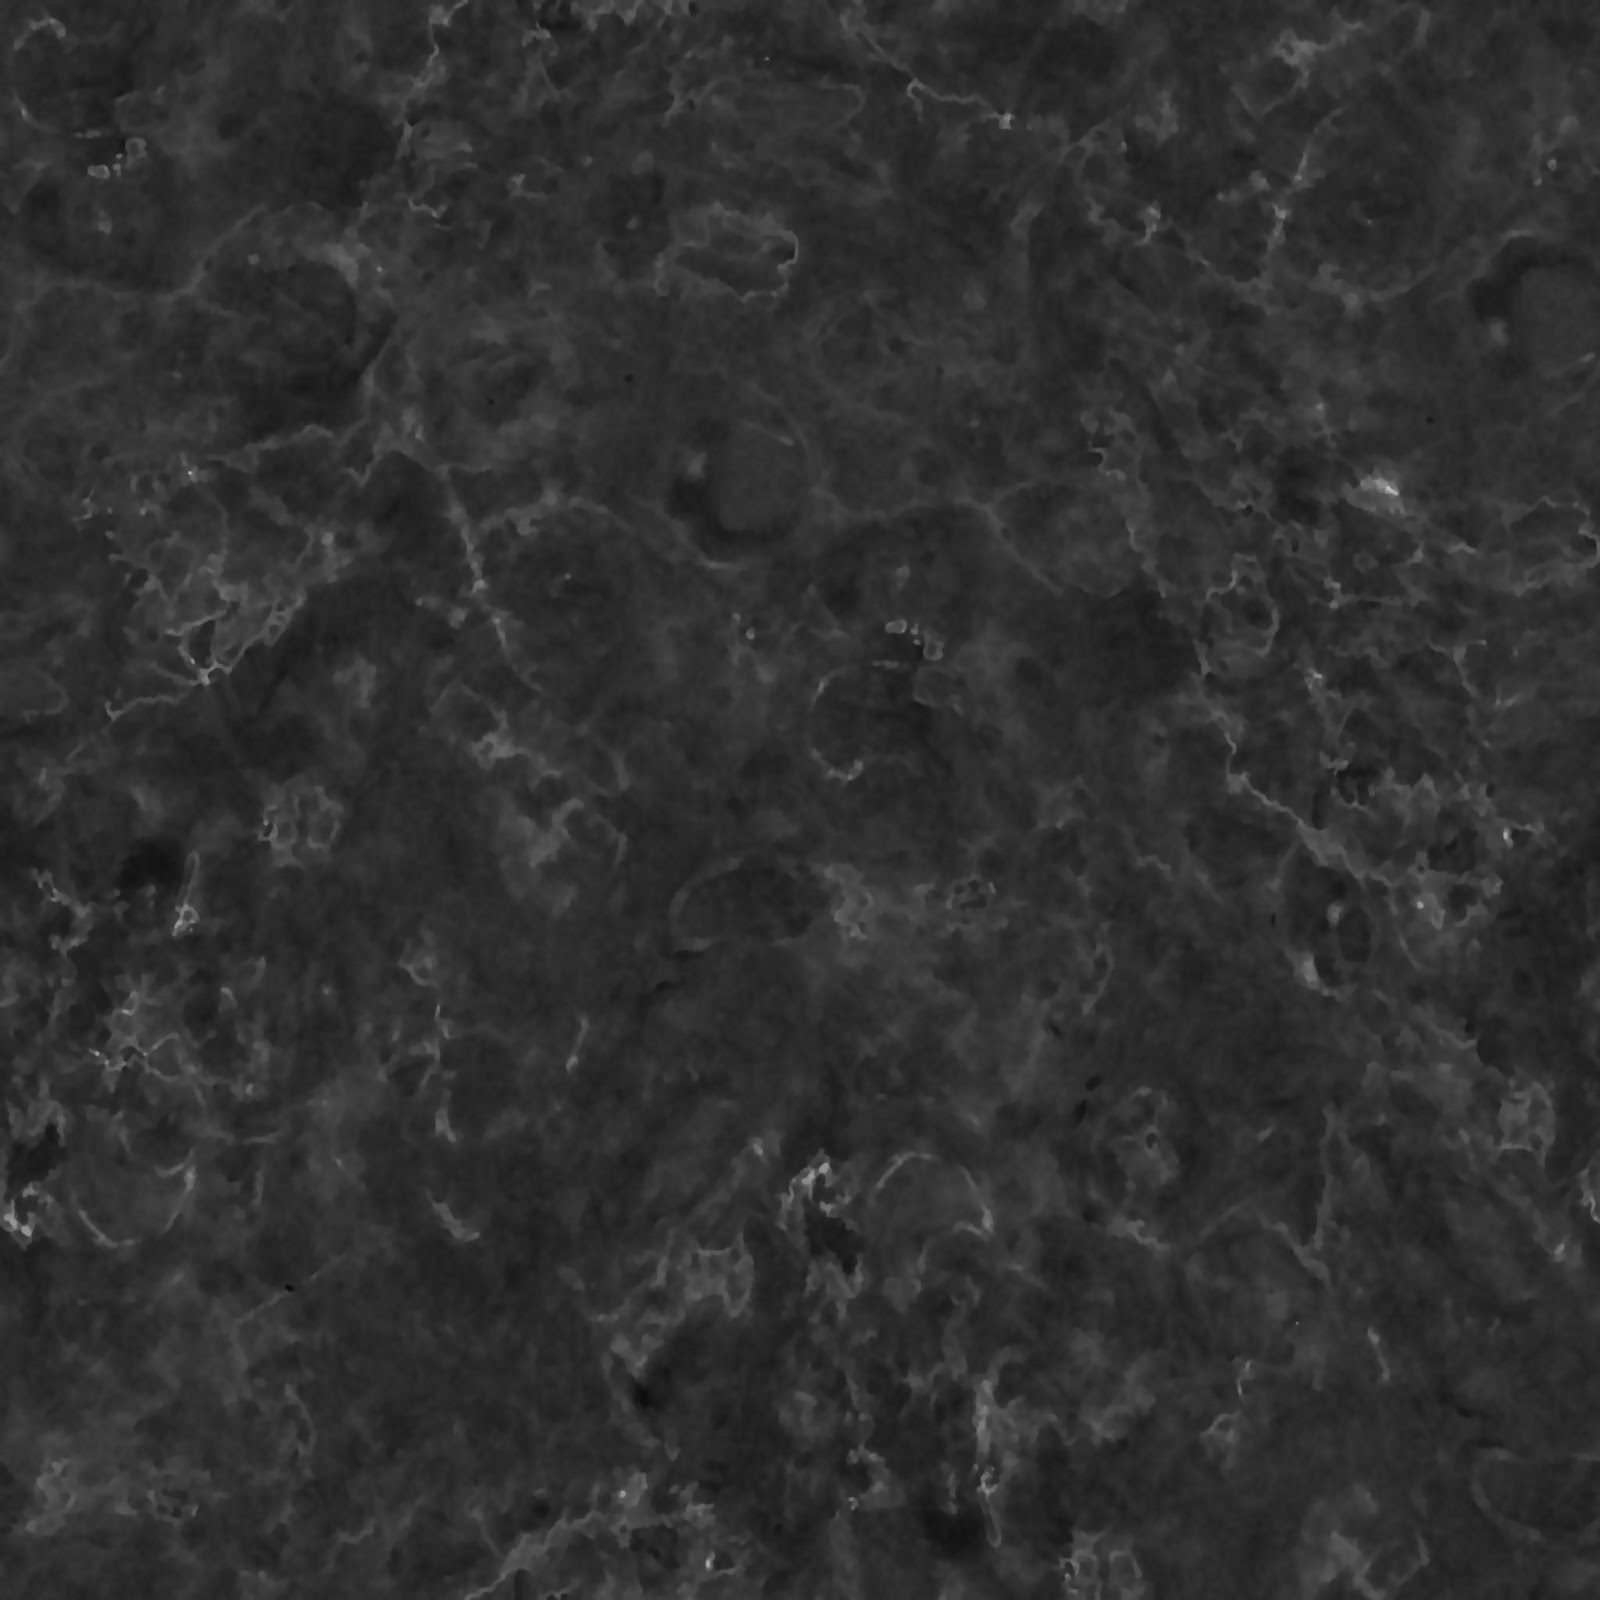 Black Marble Tile : Black marble textures photoshop freecreatives